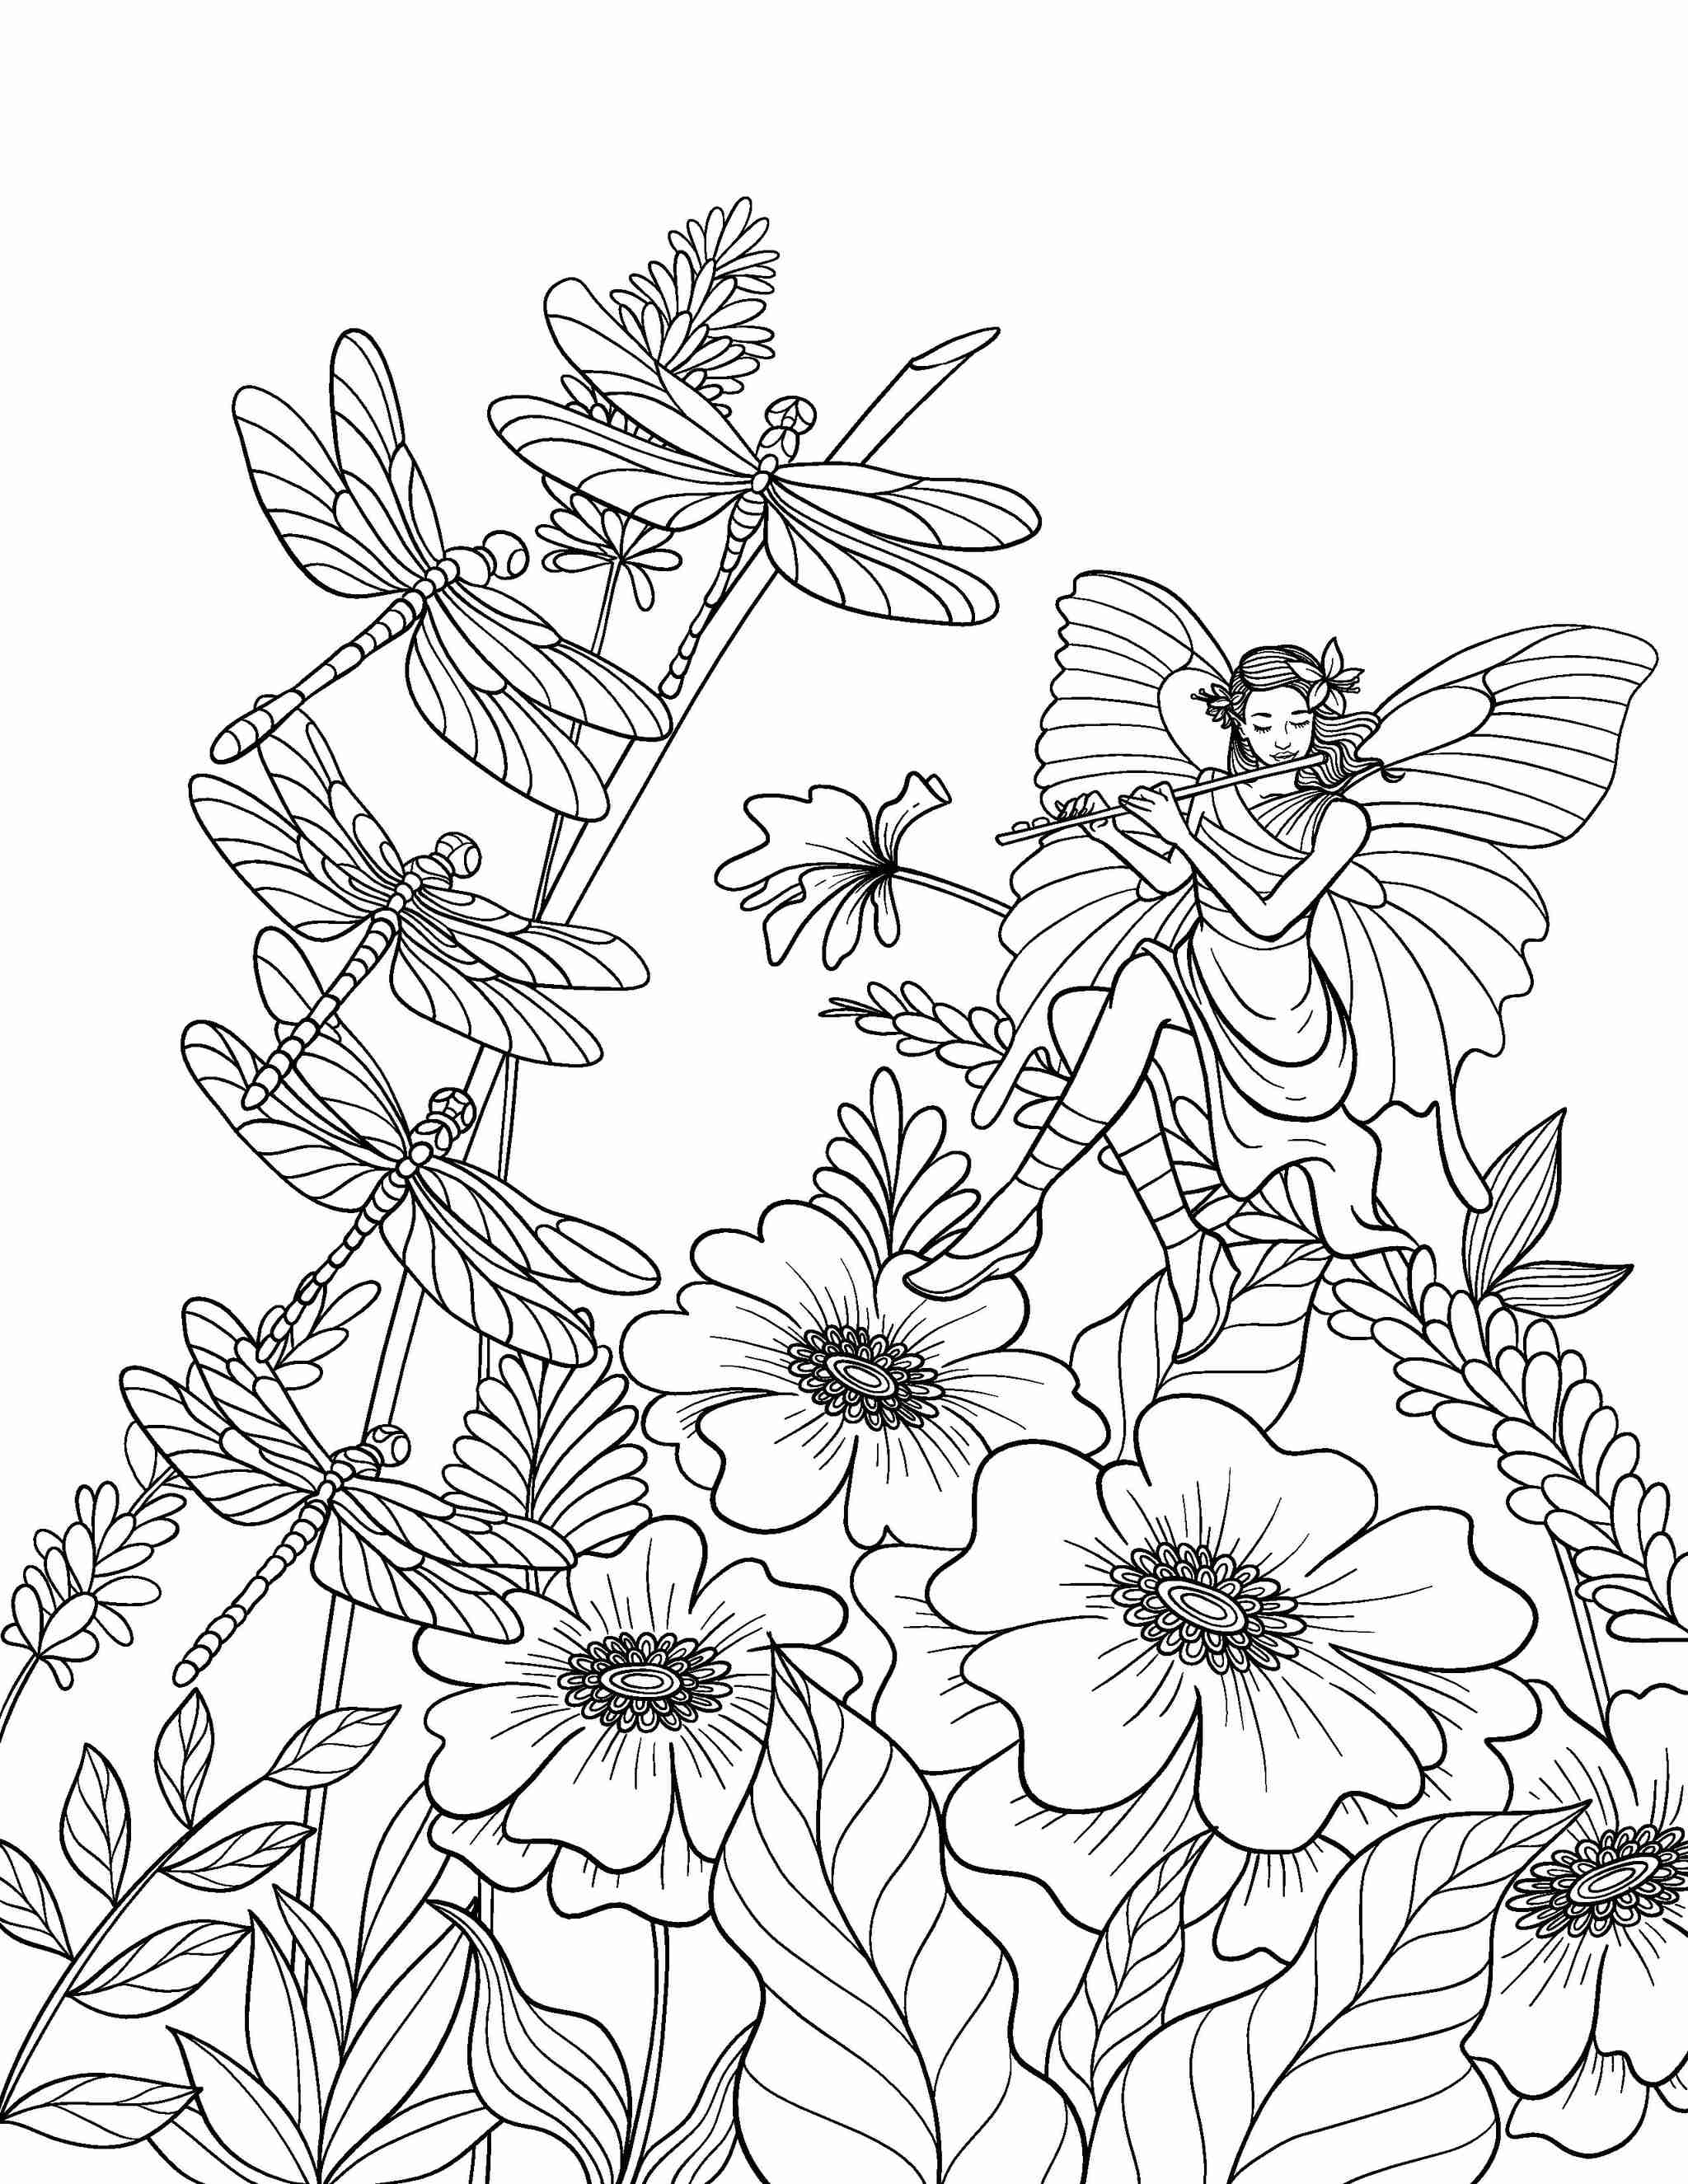 ColorIt Freebie Friday Dragonfly 2021-01-29